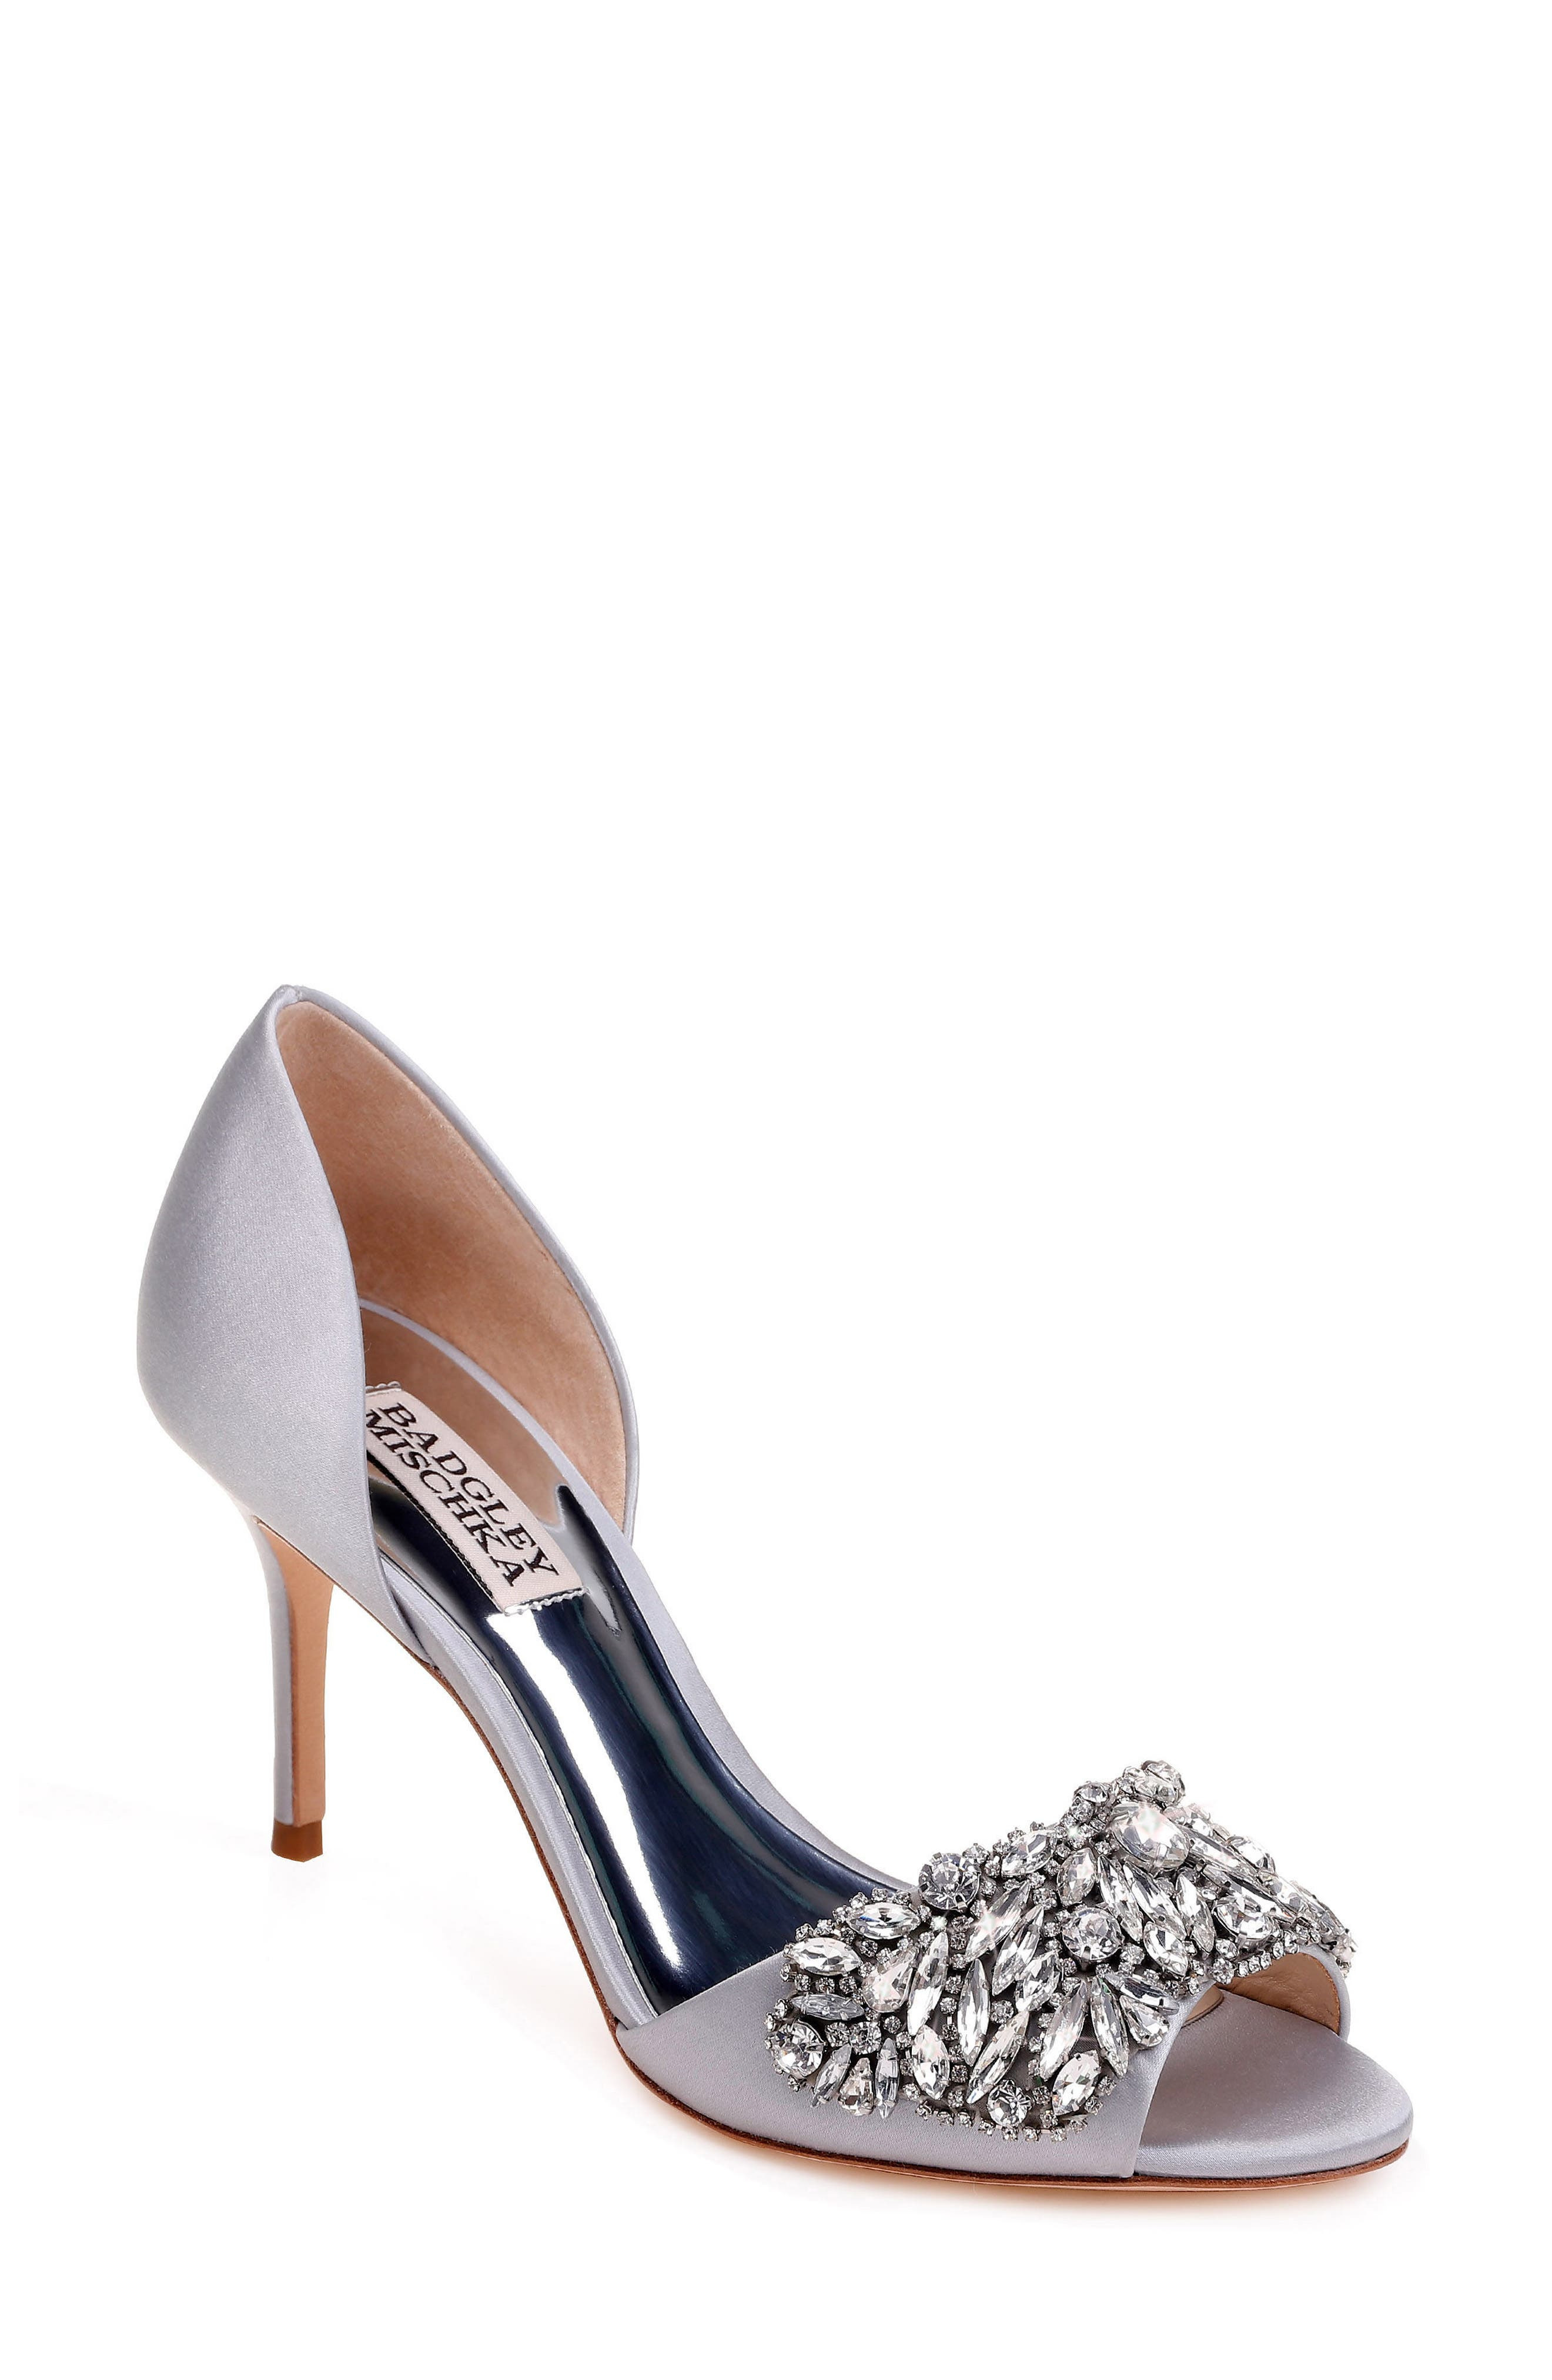 Hansen Crystal Embellished Sandal,                             Main thumbnail 1, color,                             SILVER SATIN